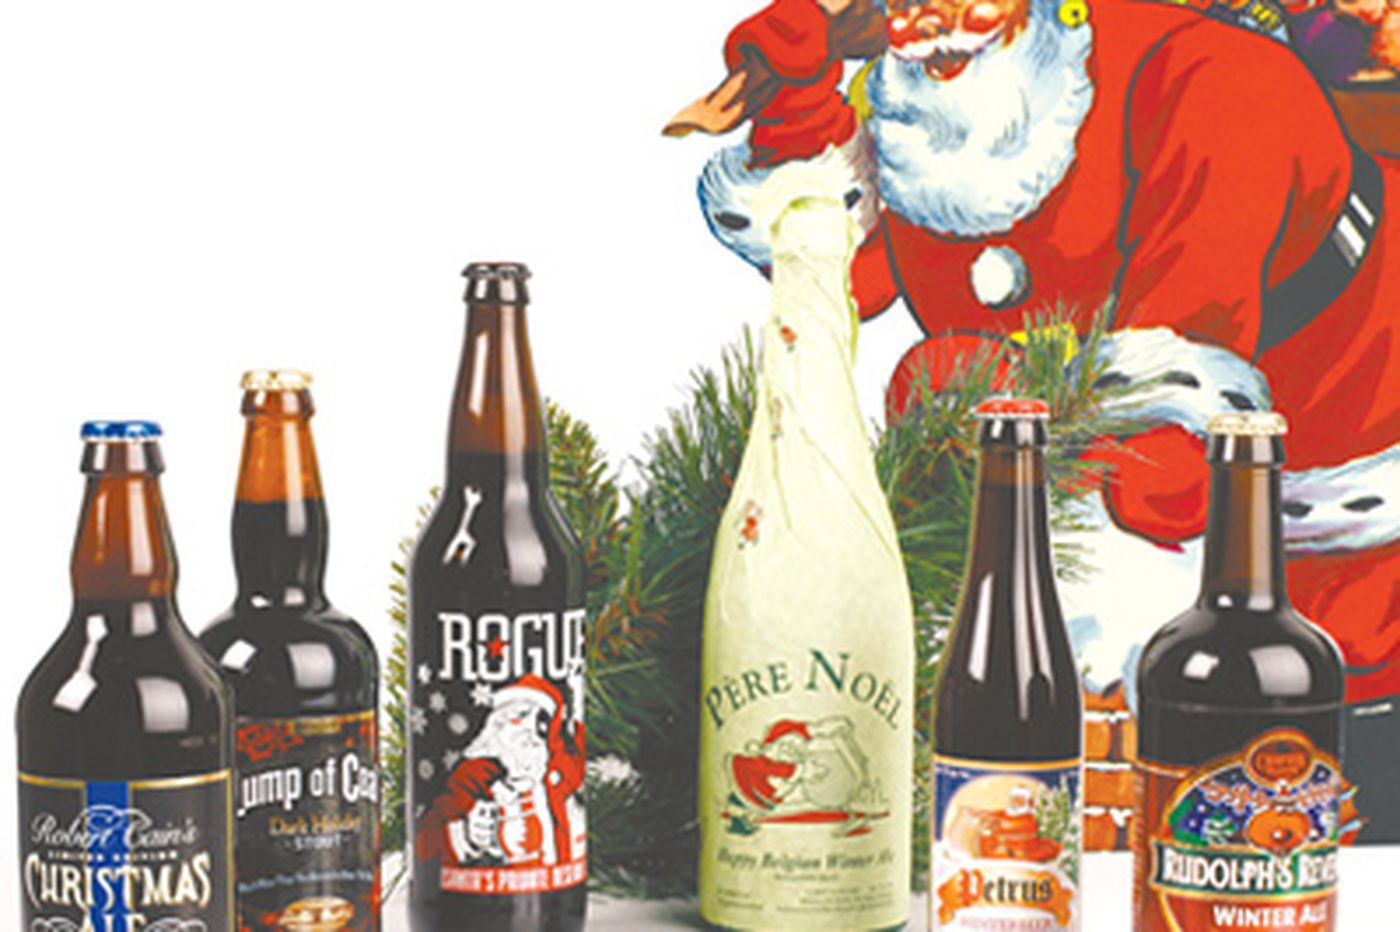 Joe Sixpack: Suds for Santa: Historically, St. Nick has been linked to drink